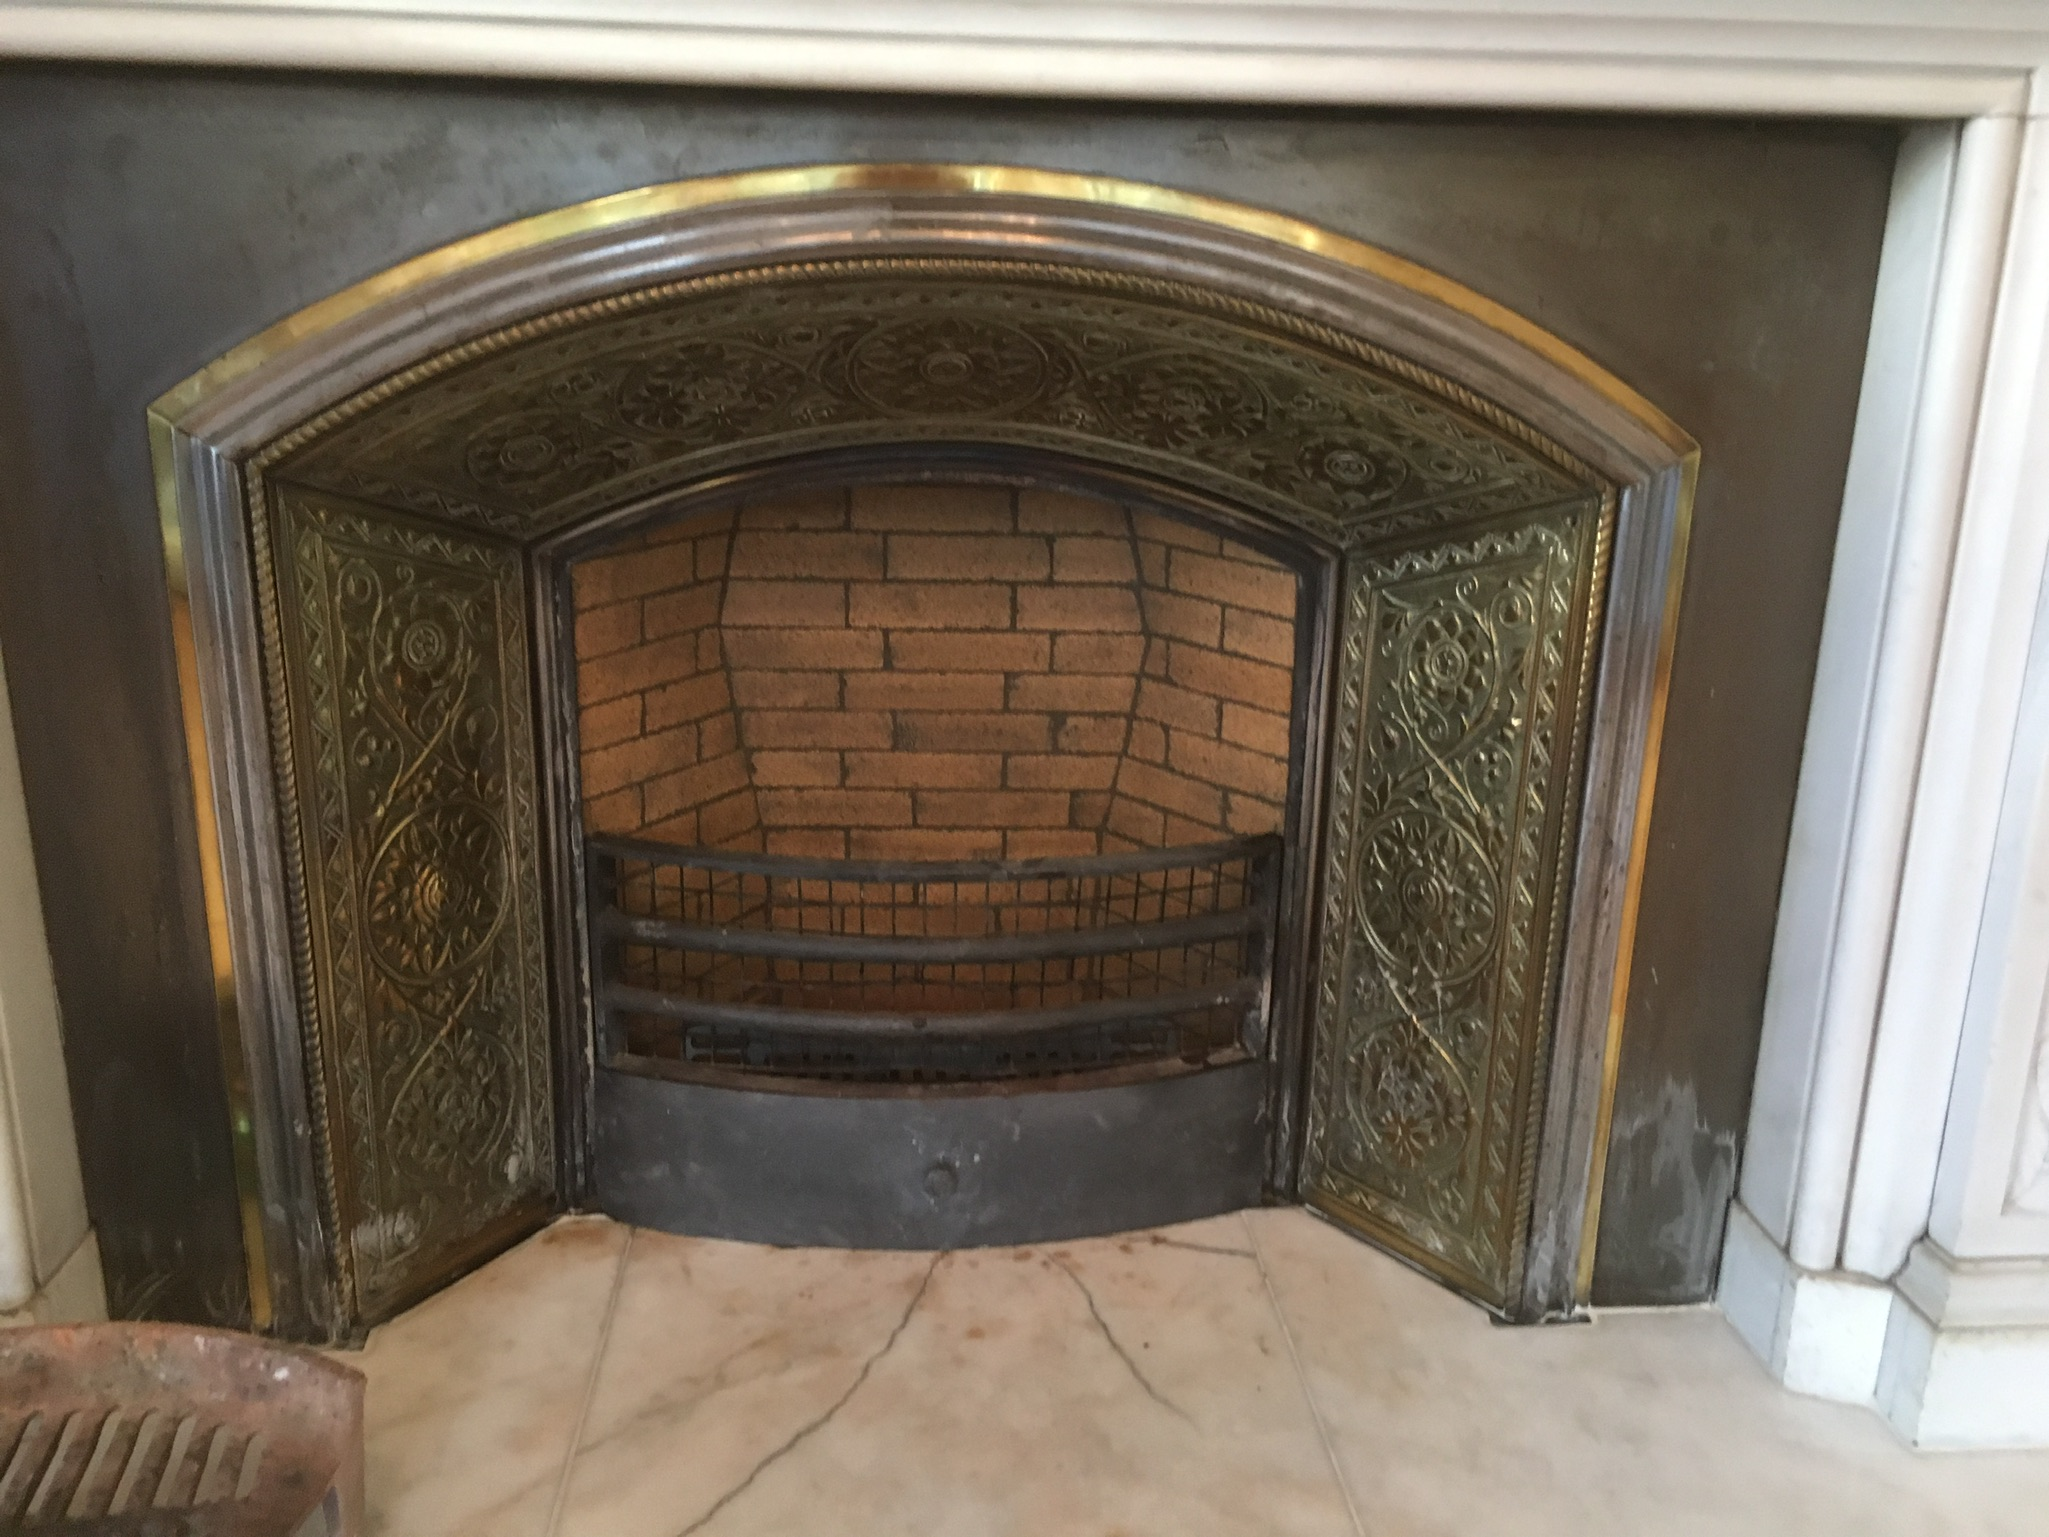 Close-up of ornamental fireplace surround